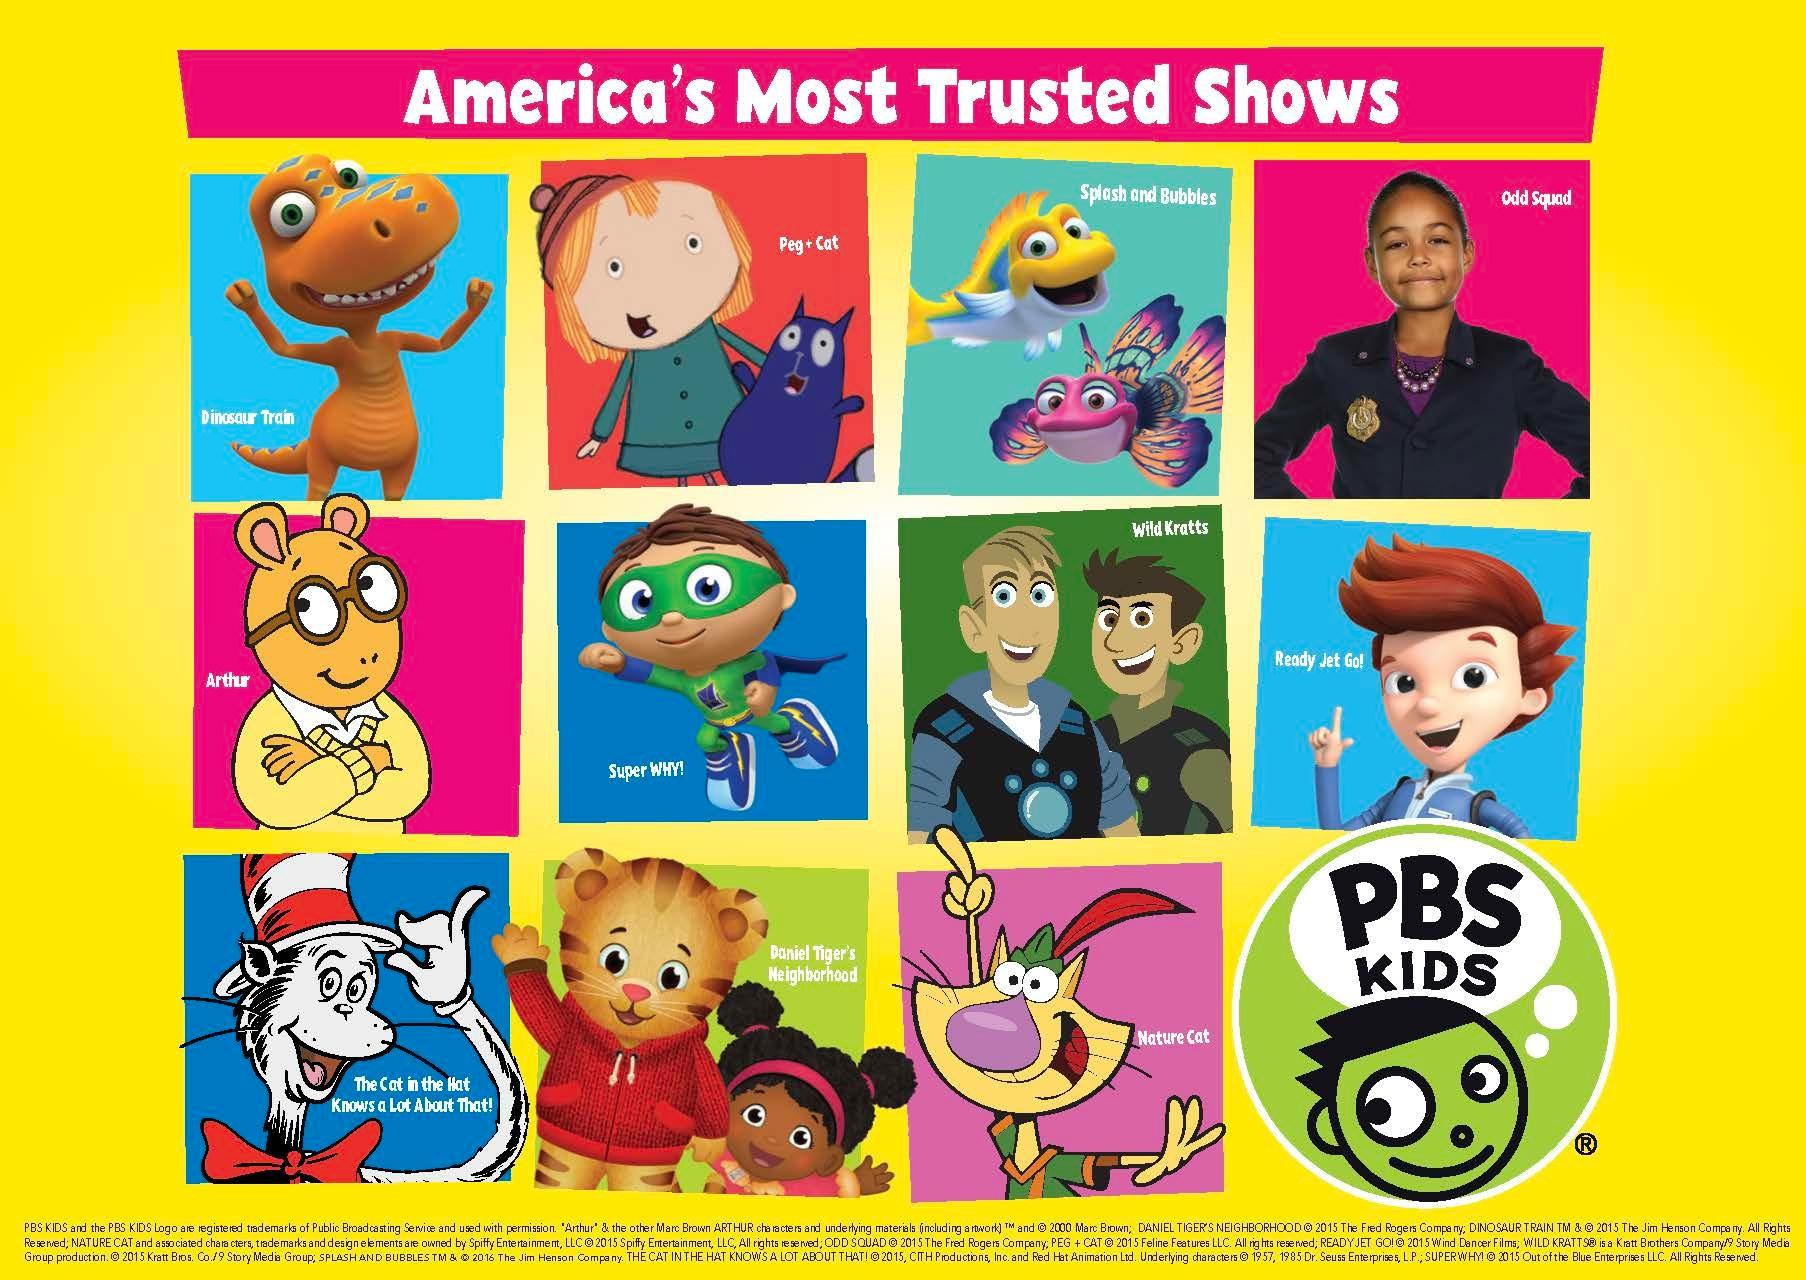 PBS Kids - America's Most Trusted Shows